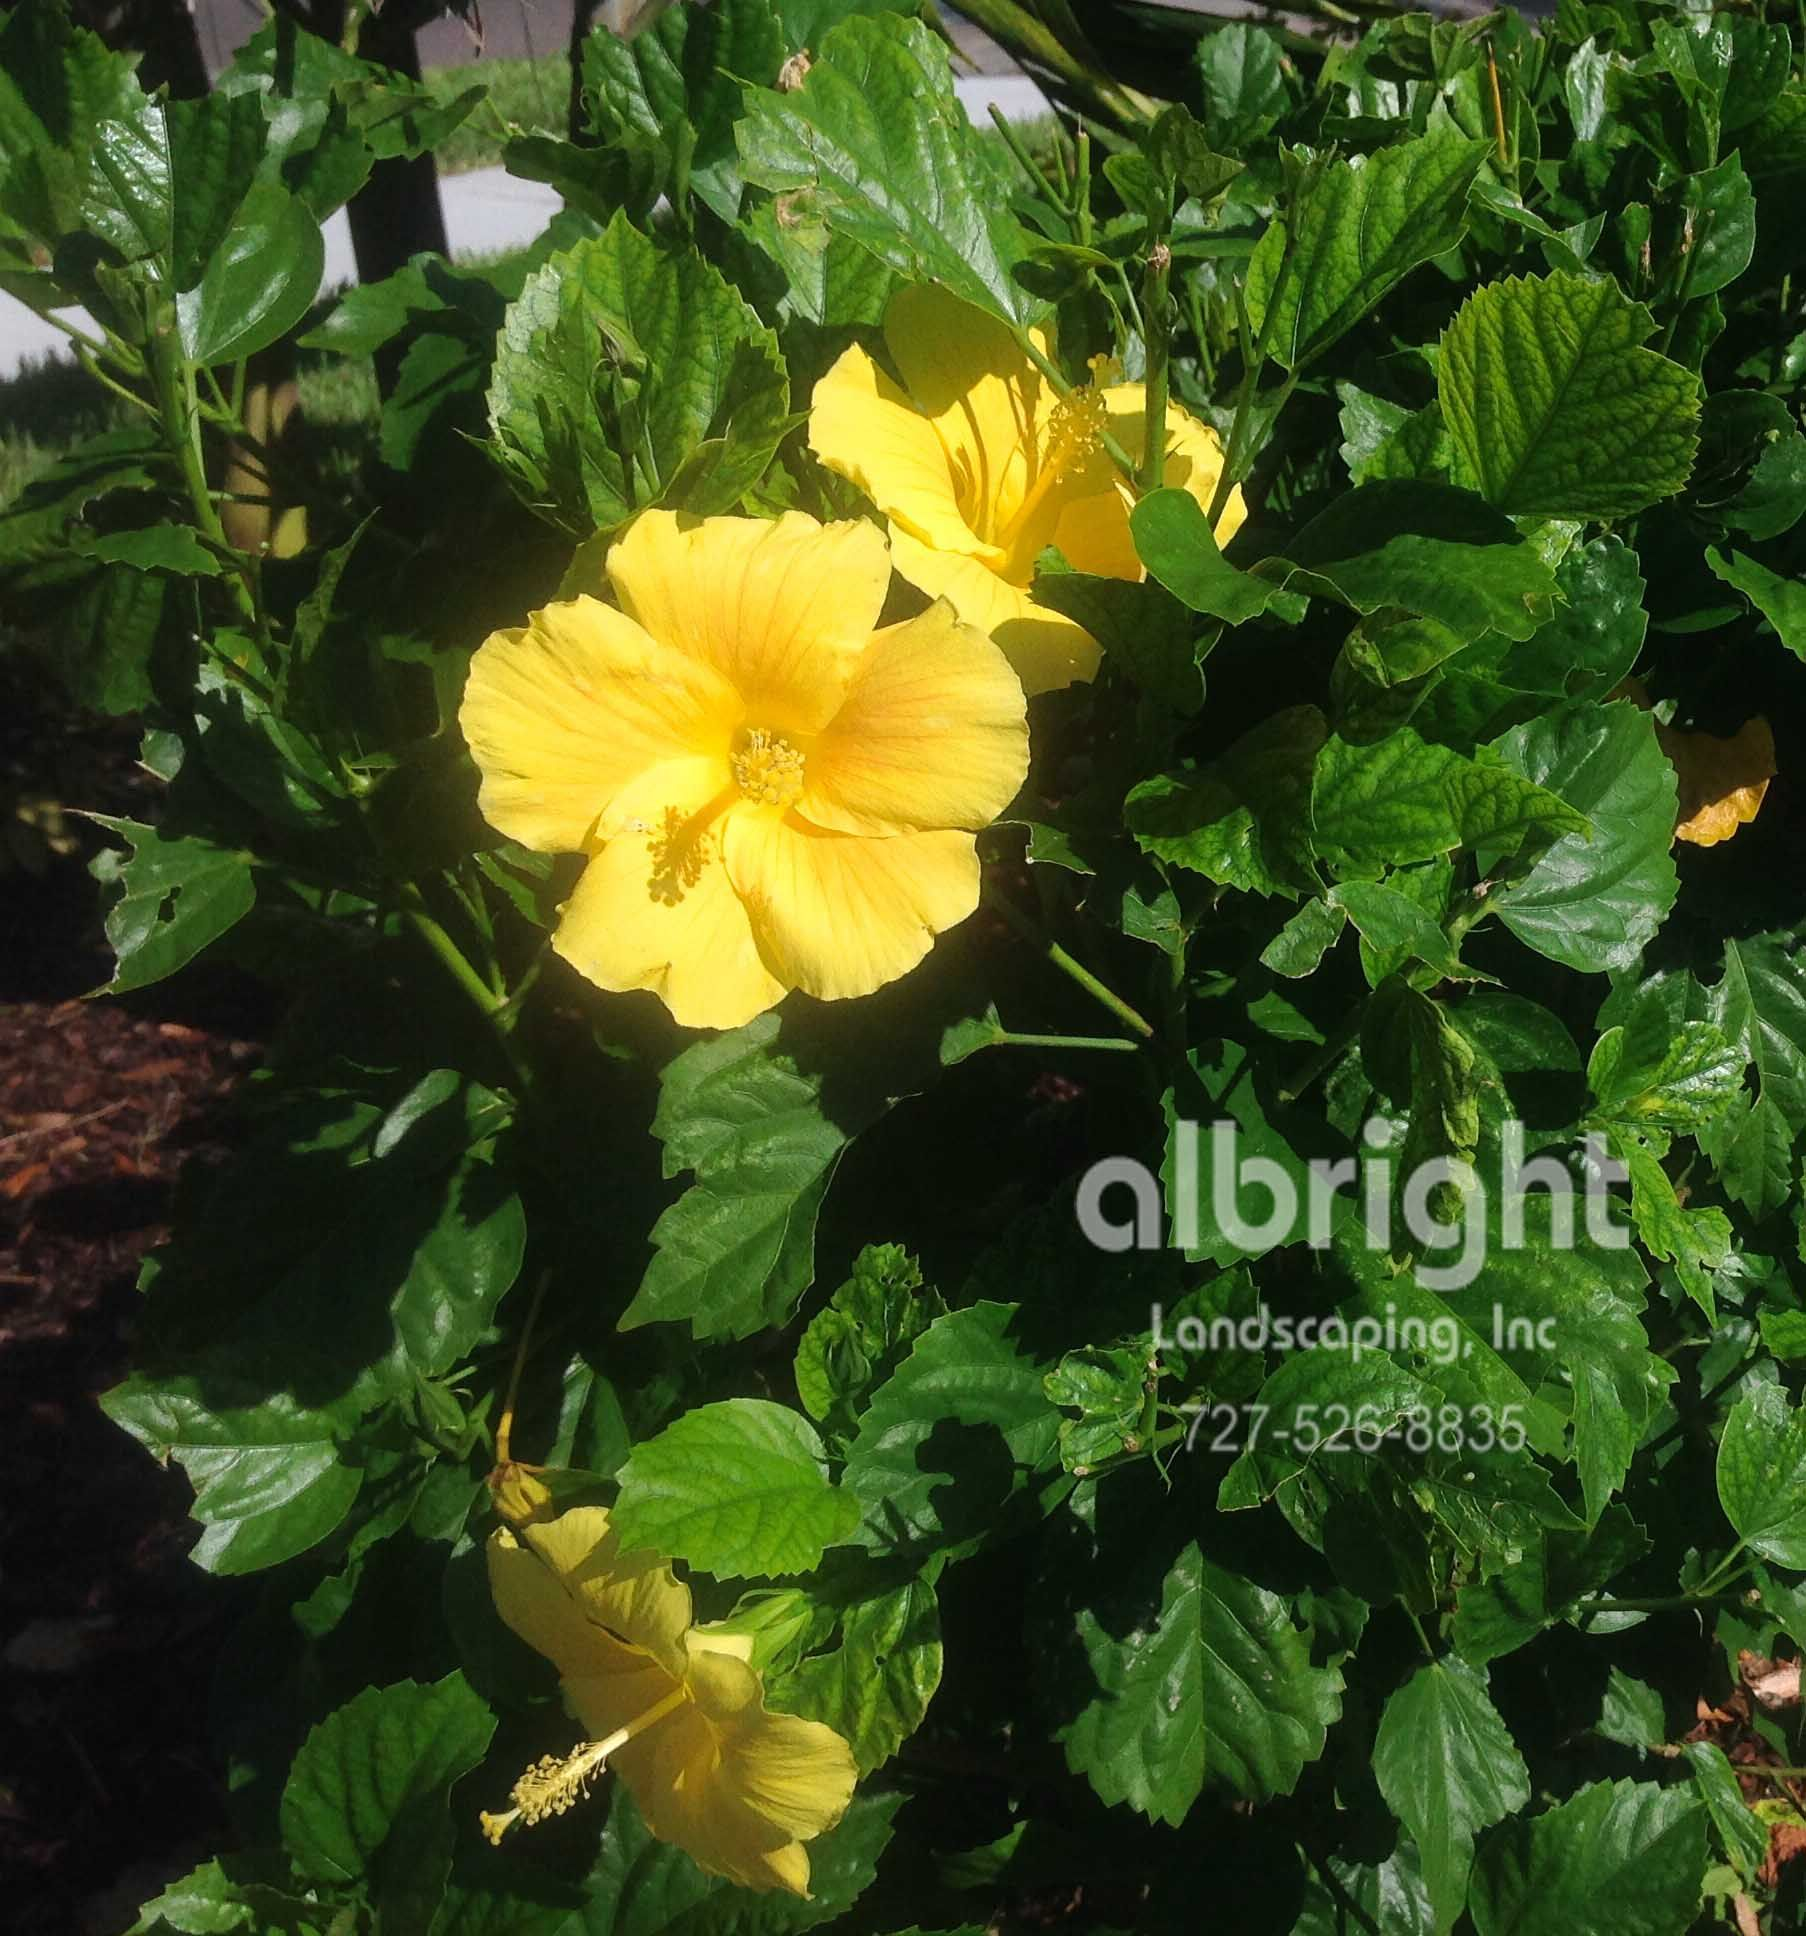 Tropical flowers yellow hibiscus blooms blooming shrub sunny yellow hibiscus blooms blooming shrub sunny garden plants izmirmasajfo Image collections